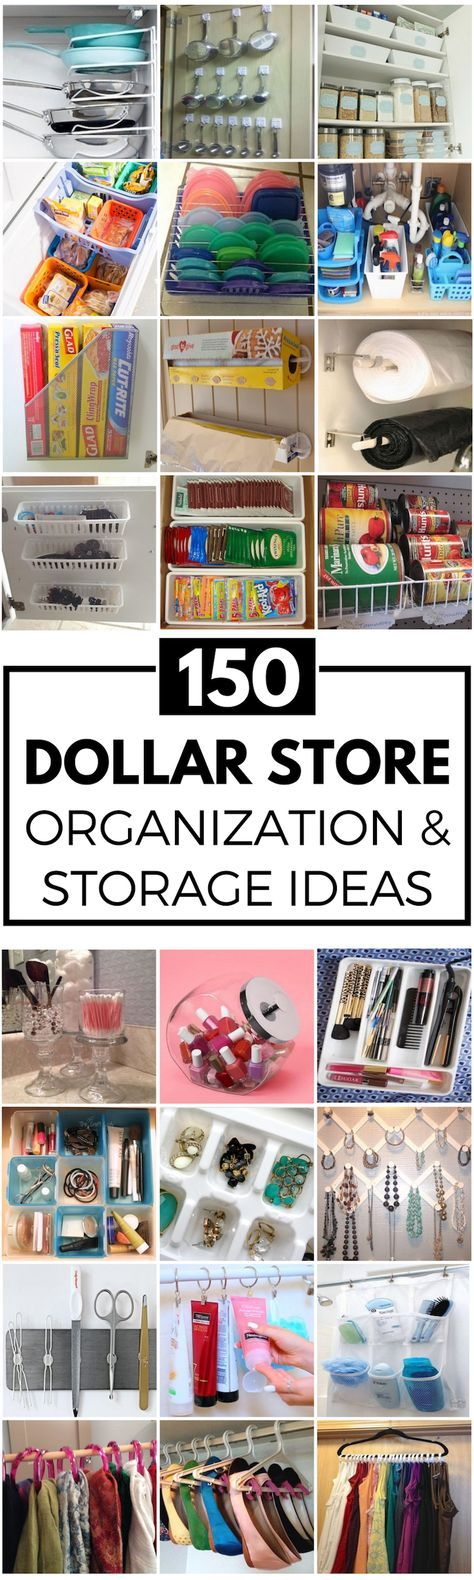 Spring cleaning just got a whole lot cheaper! Organize for less with these creative…